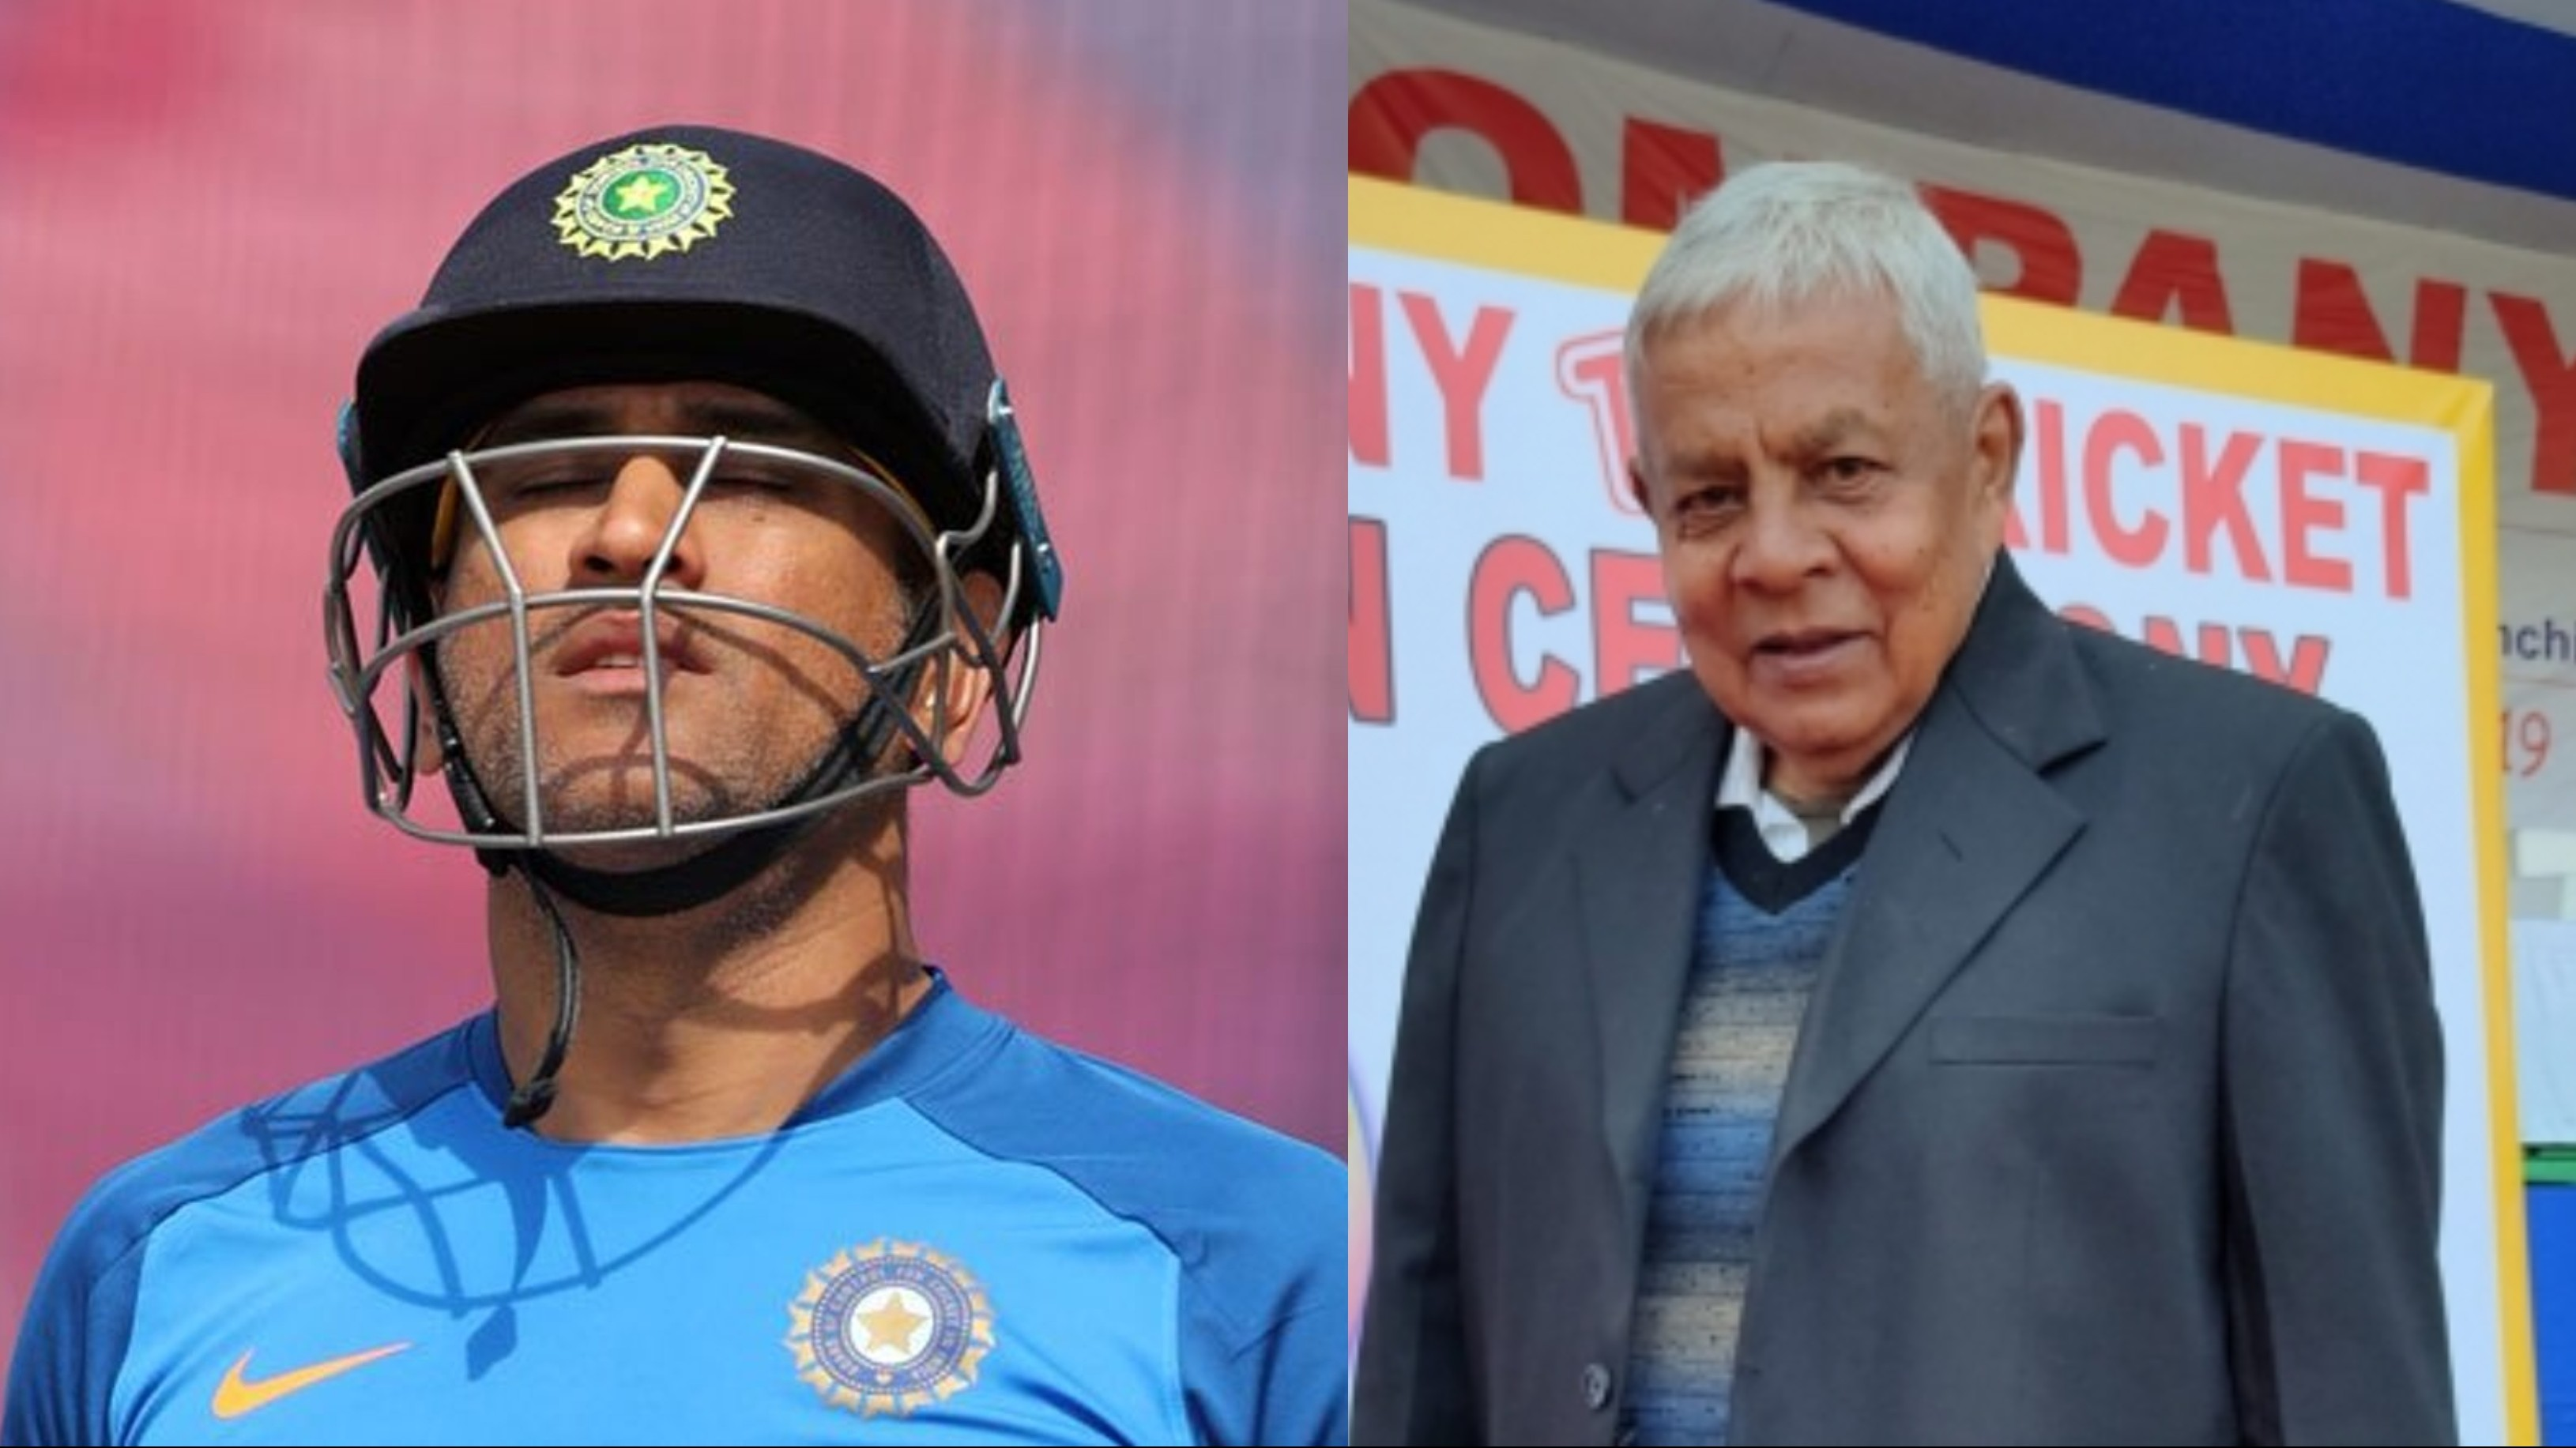 MS Dhoni's mentor Deval Sahay passes away after prolonged illness aged 73